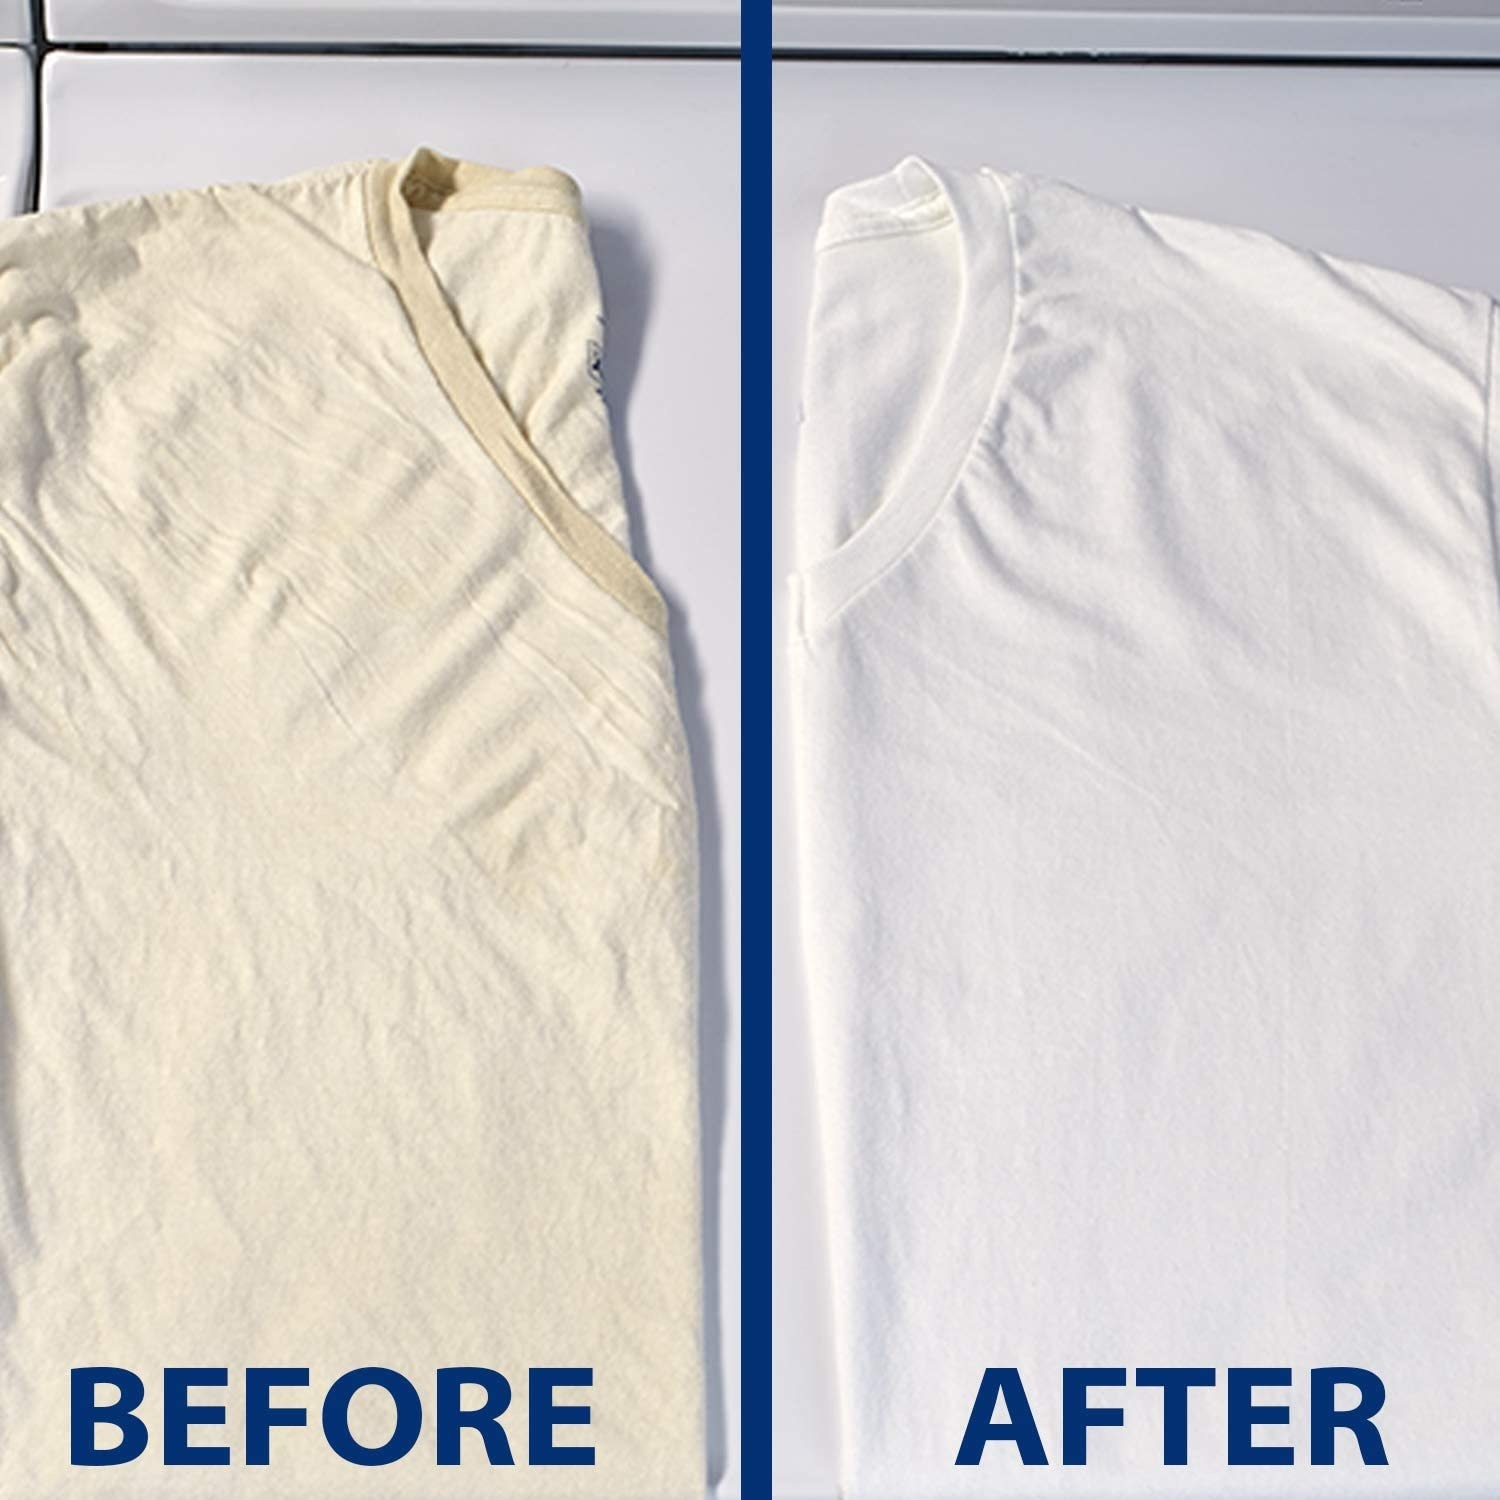 a before and after of a white shirt